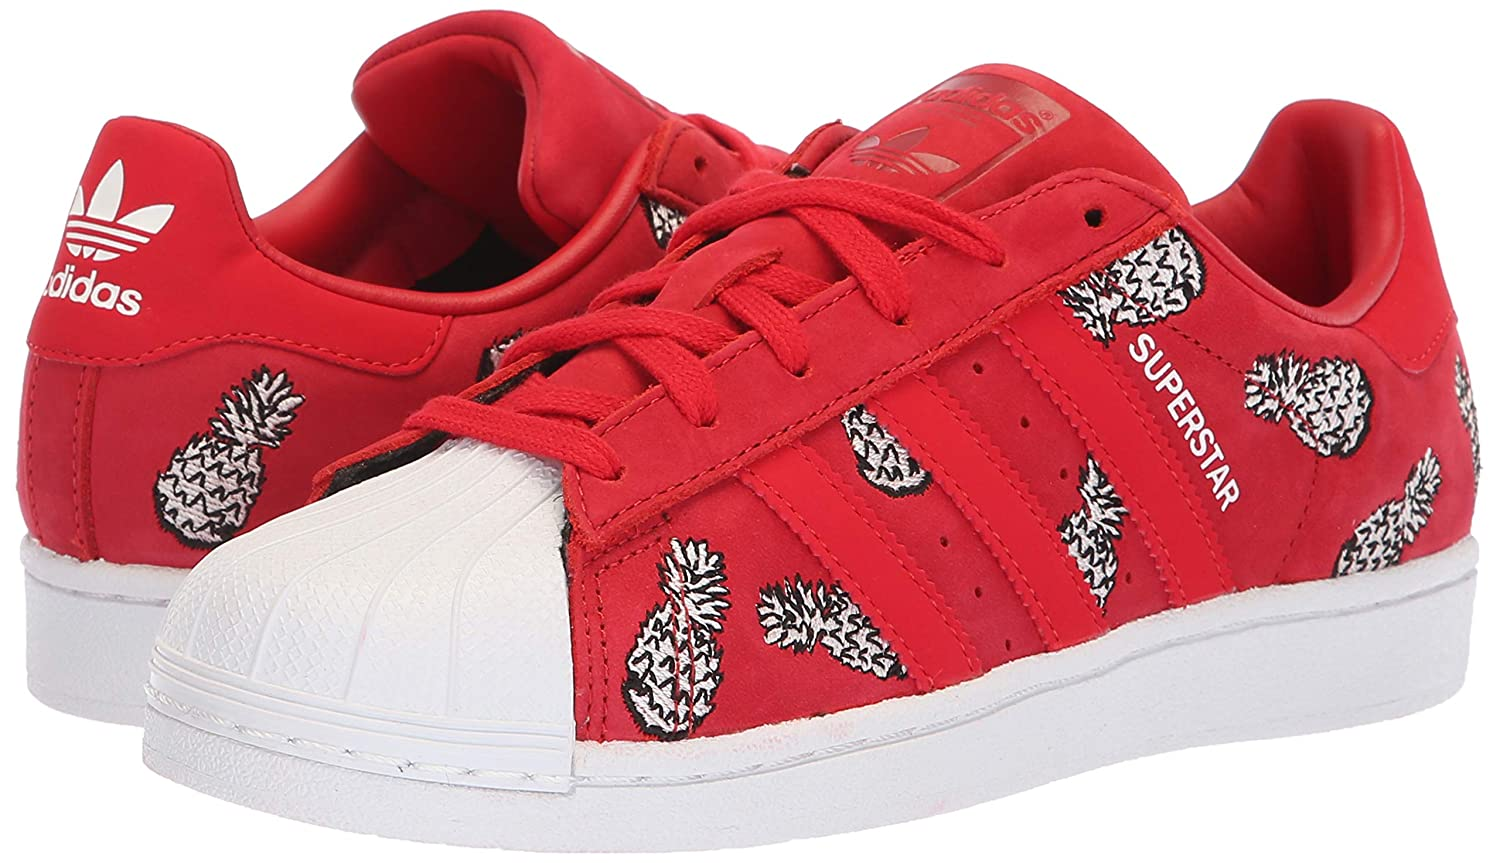 Adidas-Superstar-Women-039-s-Fashion-Casual-Sneakers-Athletic-Shoes-Originals thumbnail 8